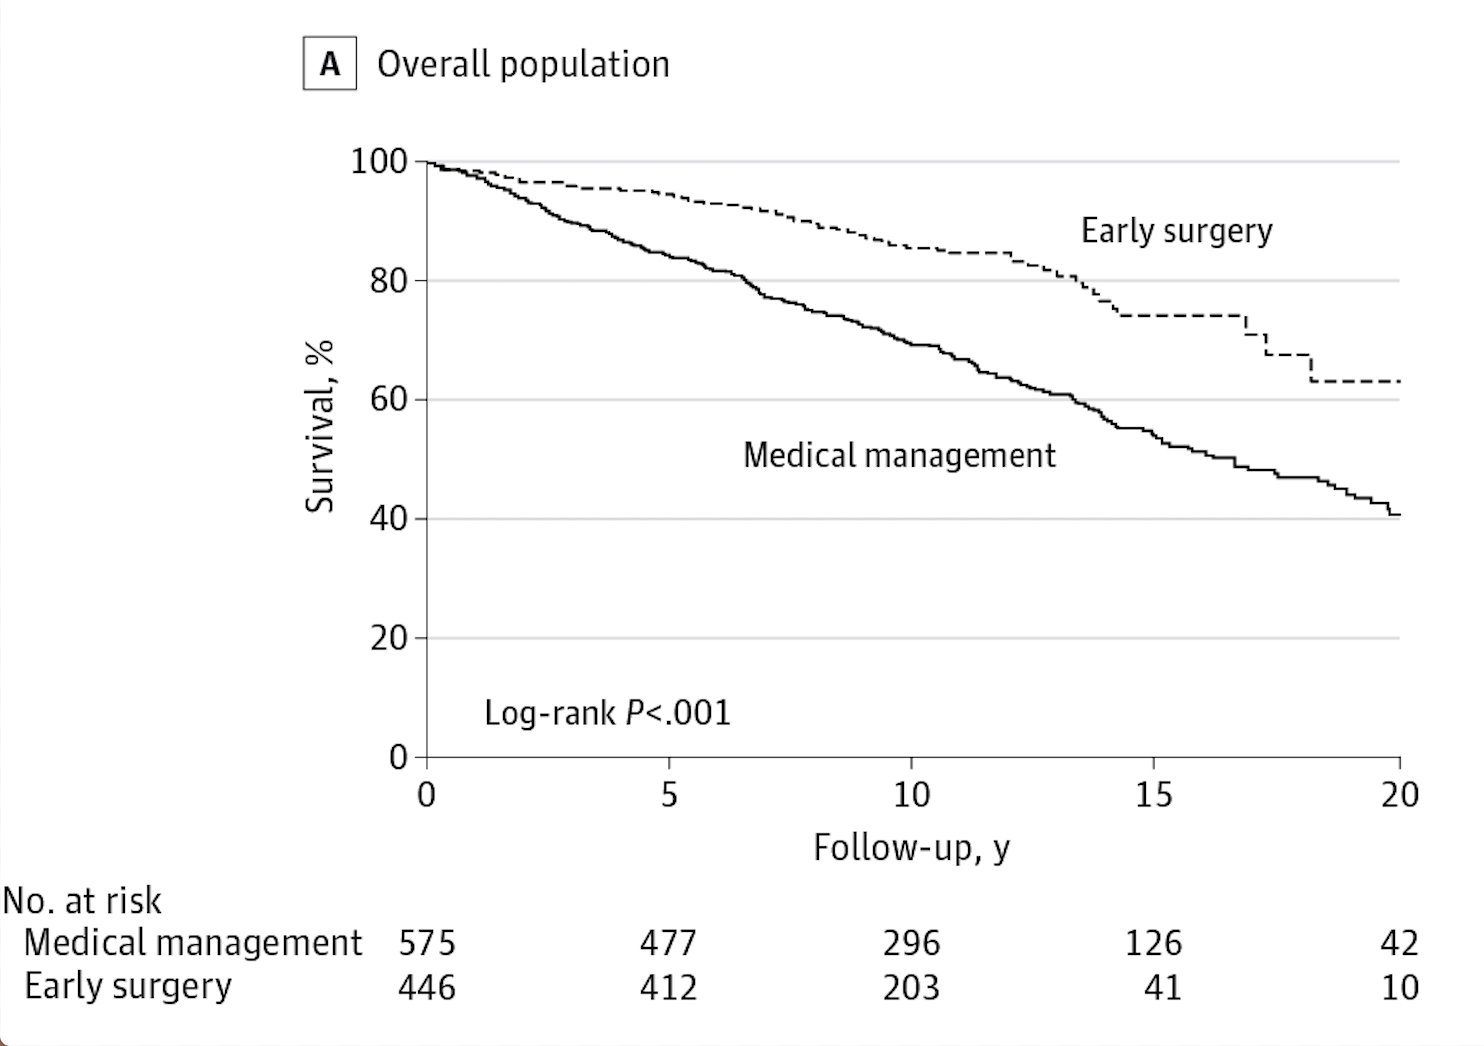 Survival much better after mitral valve repair even in asymptomatic patients